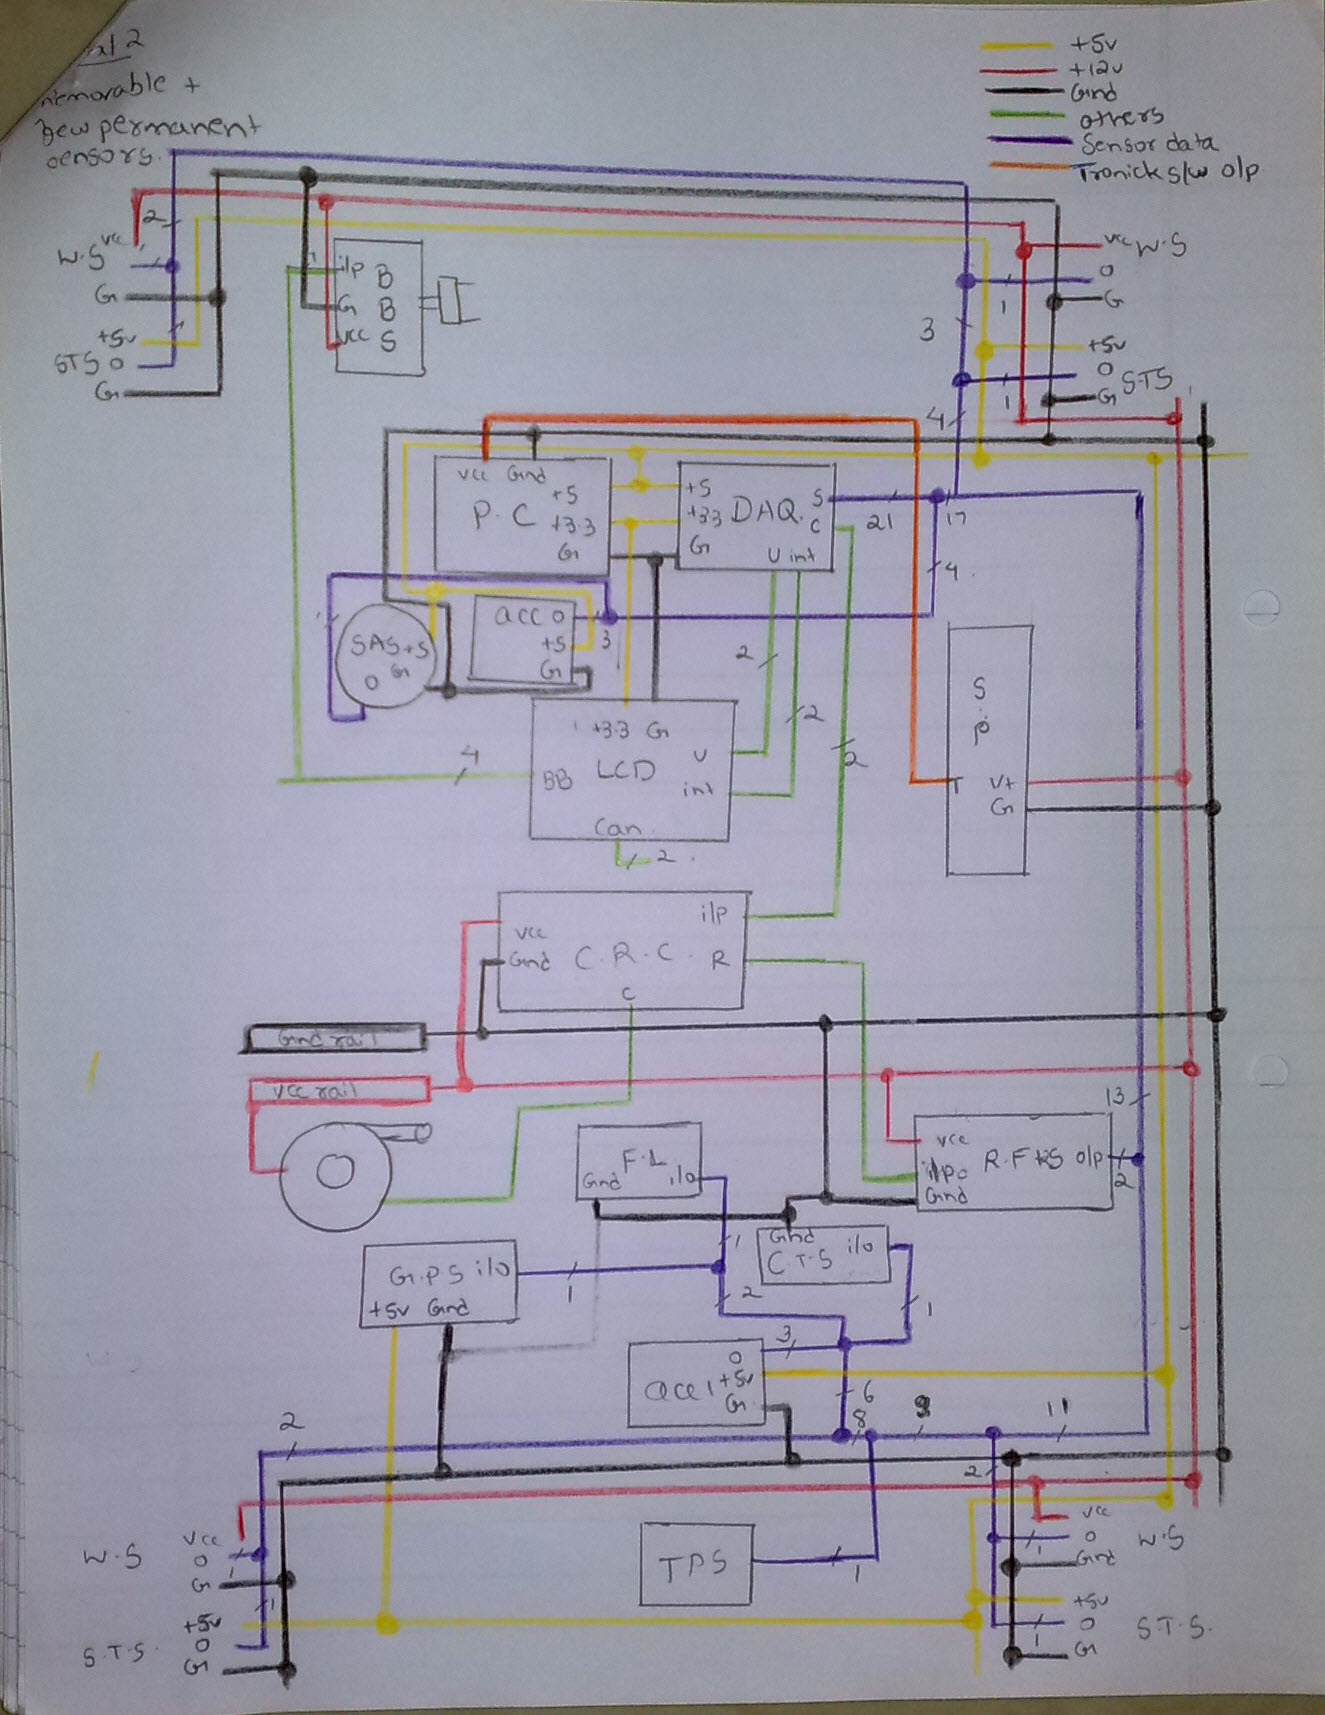 Wiring Diagram For Gm Derby Car